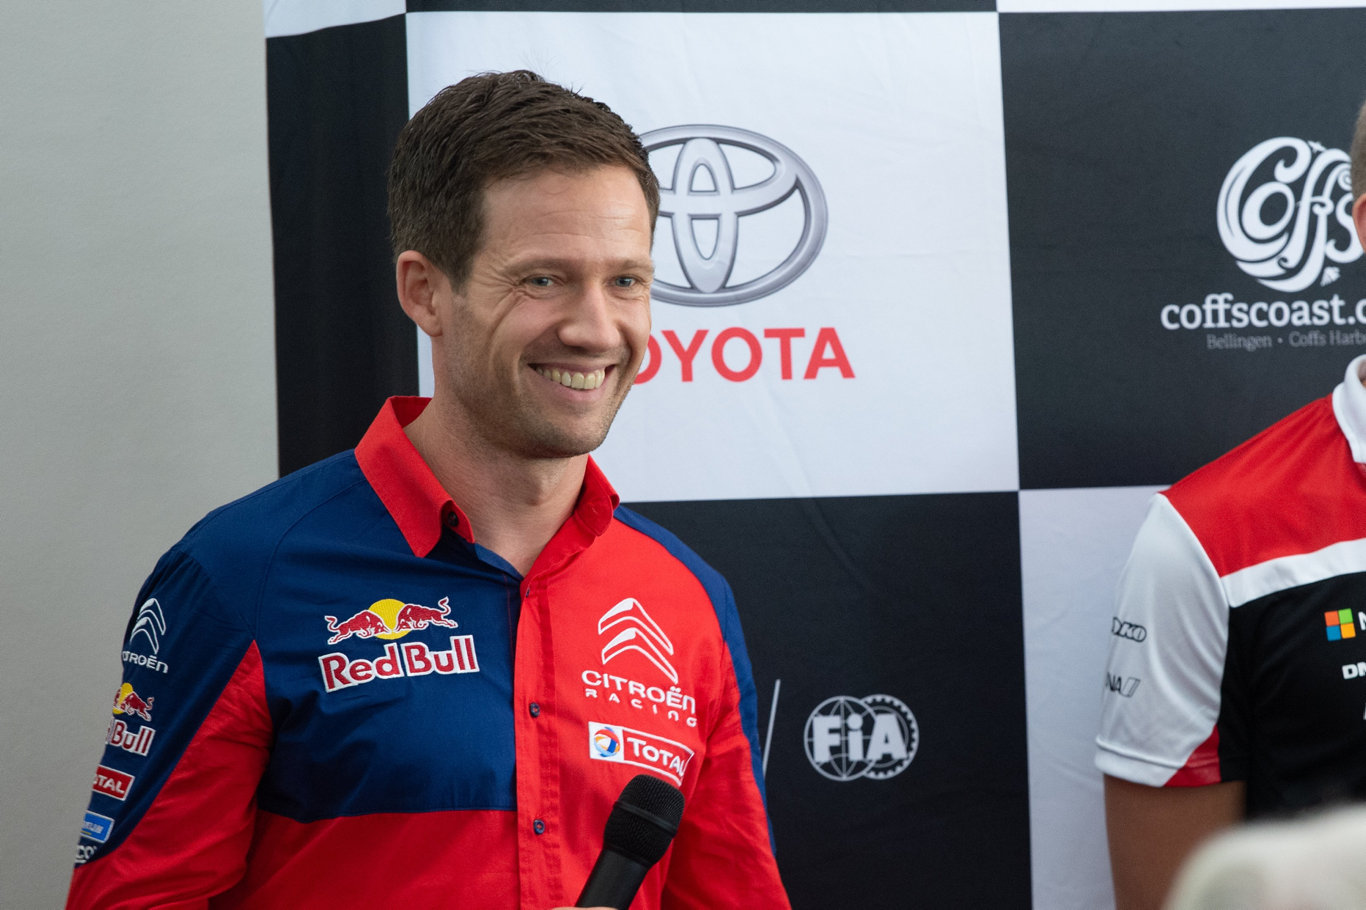 Six-time World Rally Champion Sébastien Ogier this afternoon pledged a generous donation to help wildlife organisations save and treat bushfire affected animals.